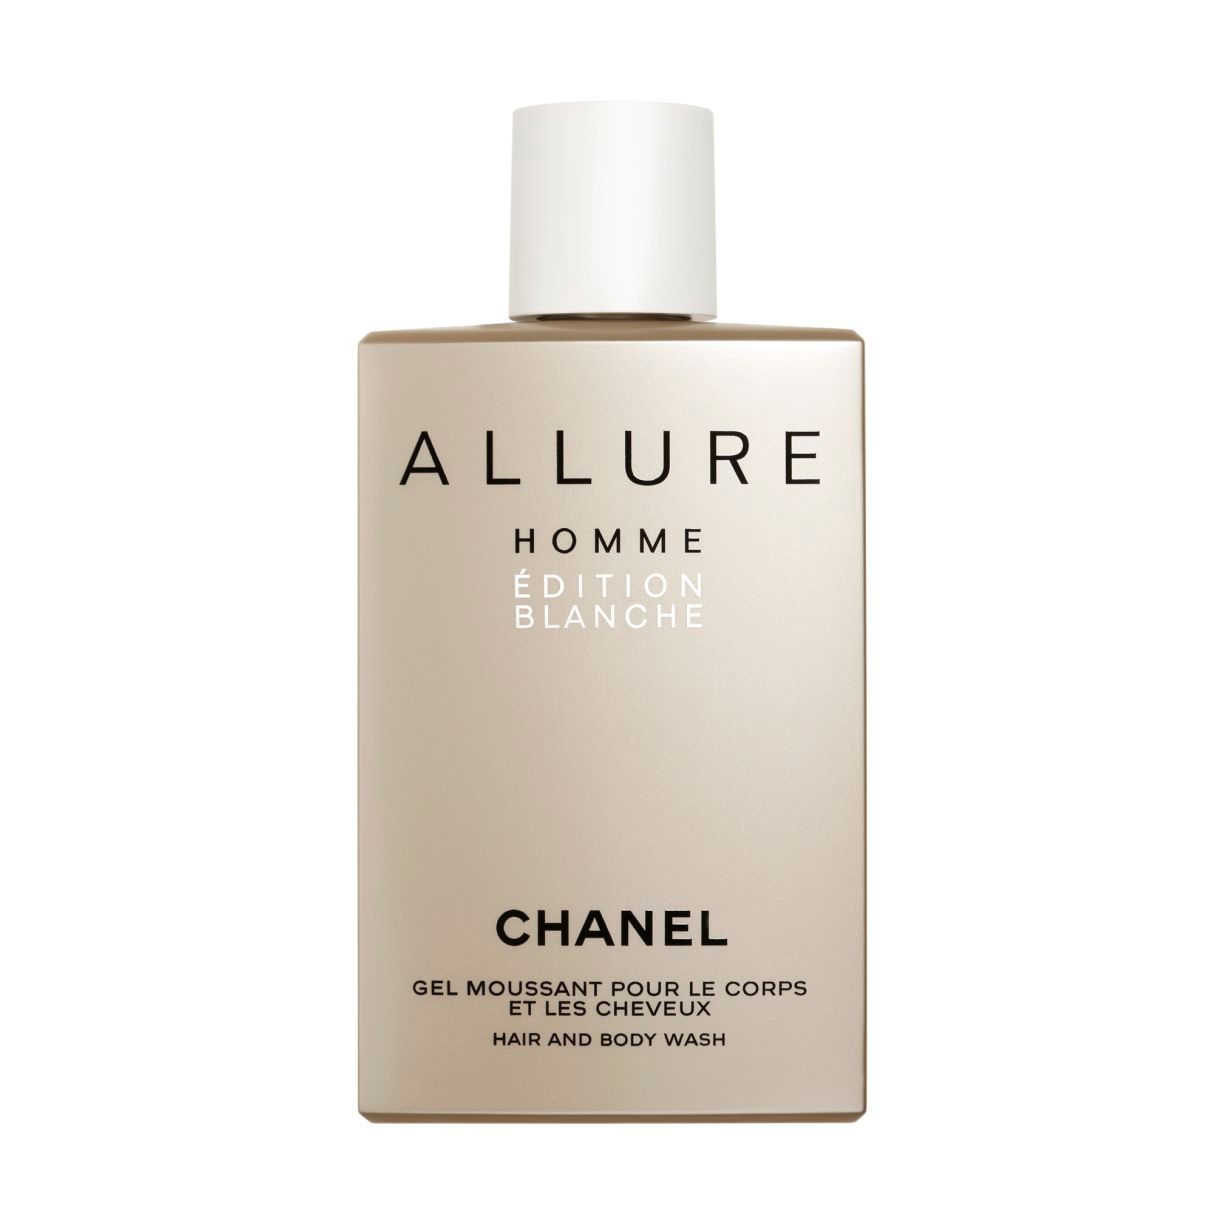 ALLURE HOMME EDITION BLANCHE HAIR AND BODY WASH 200ml